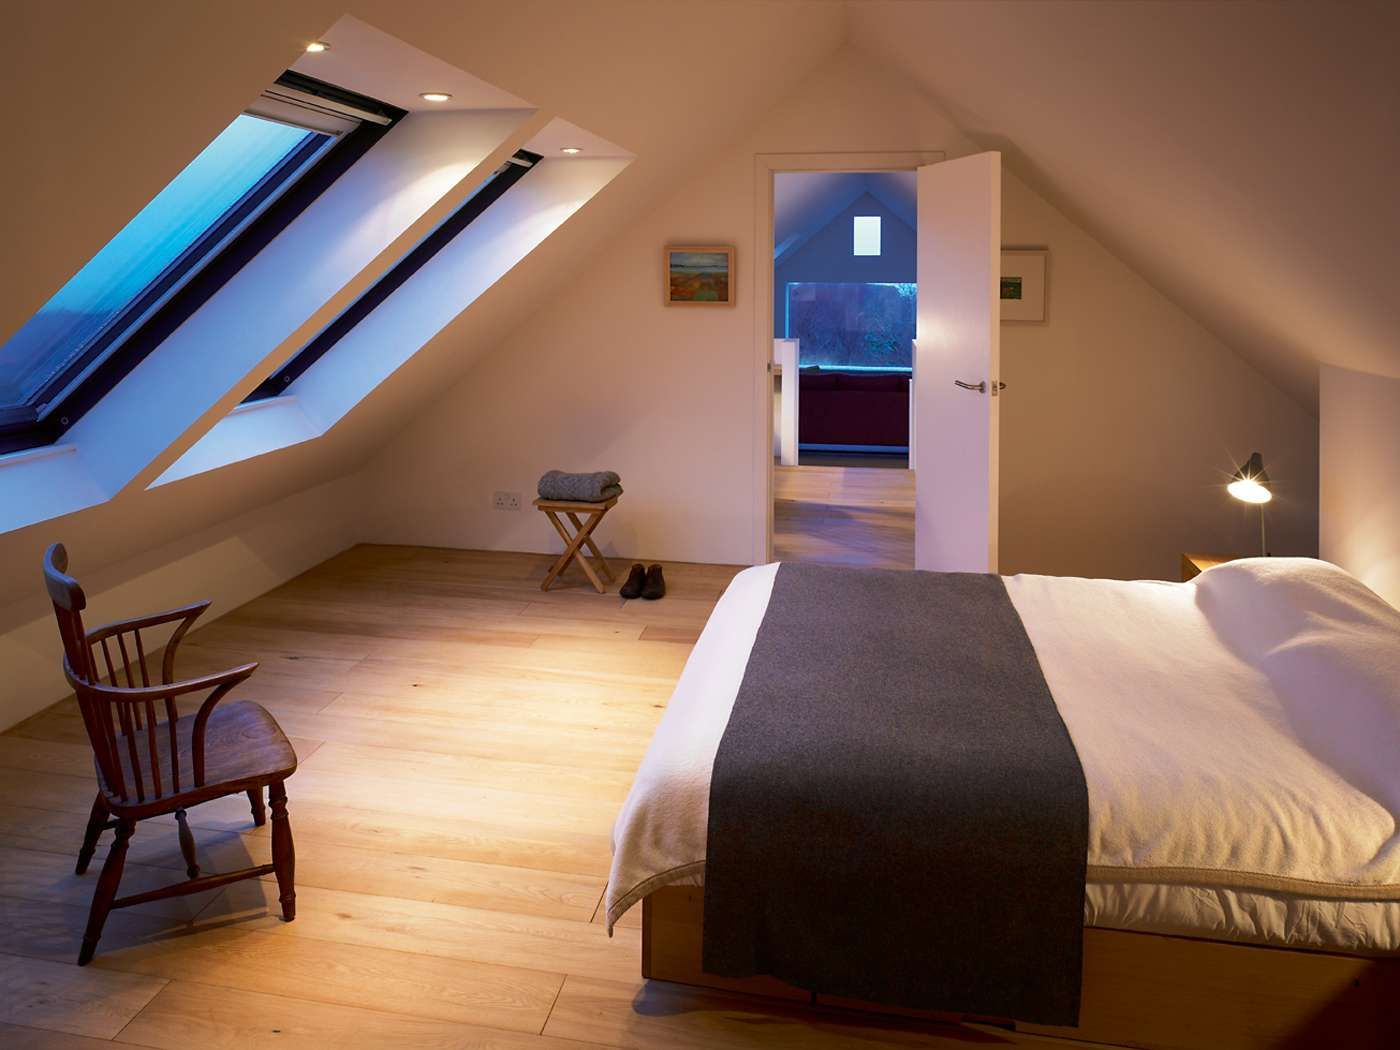 Loft bedroom ideas with ensuite  A Sustainable Long House  Homebuilding u Renovating  Zolder